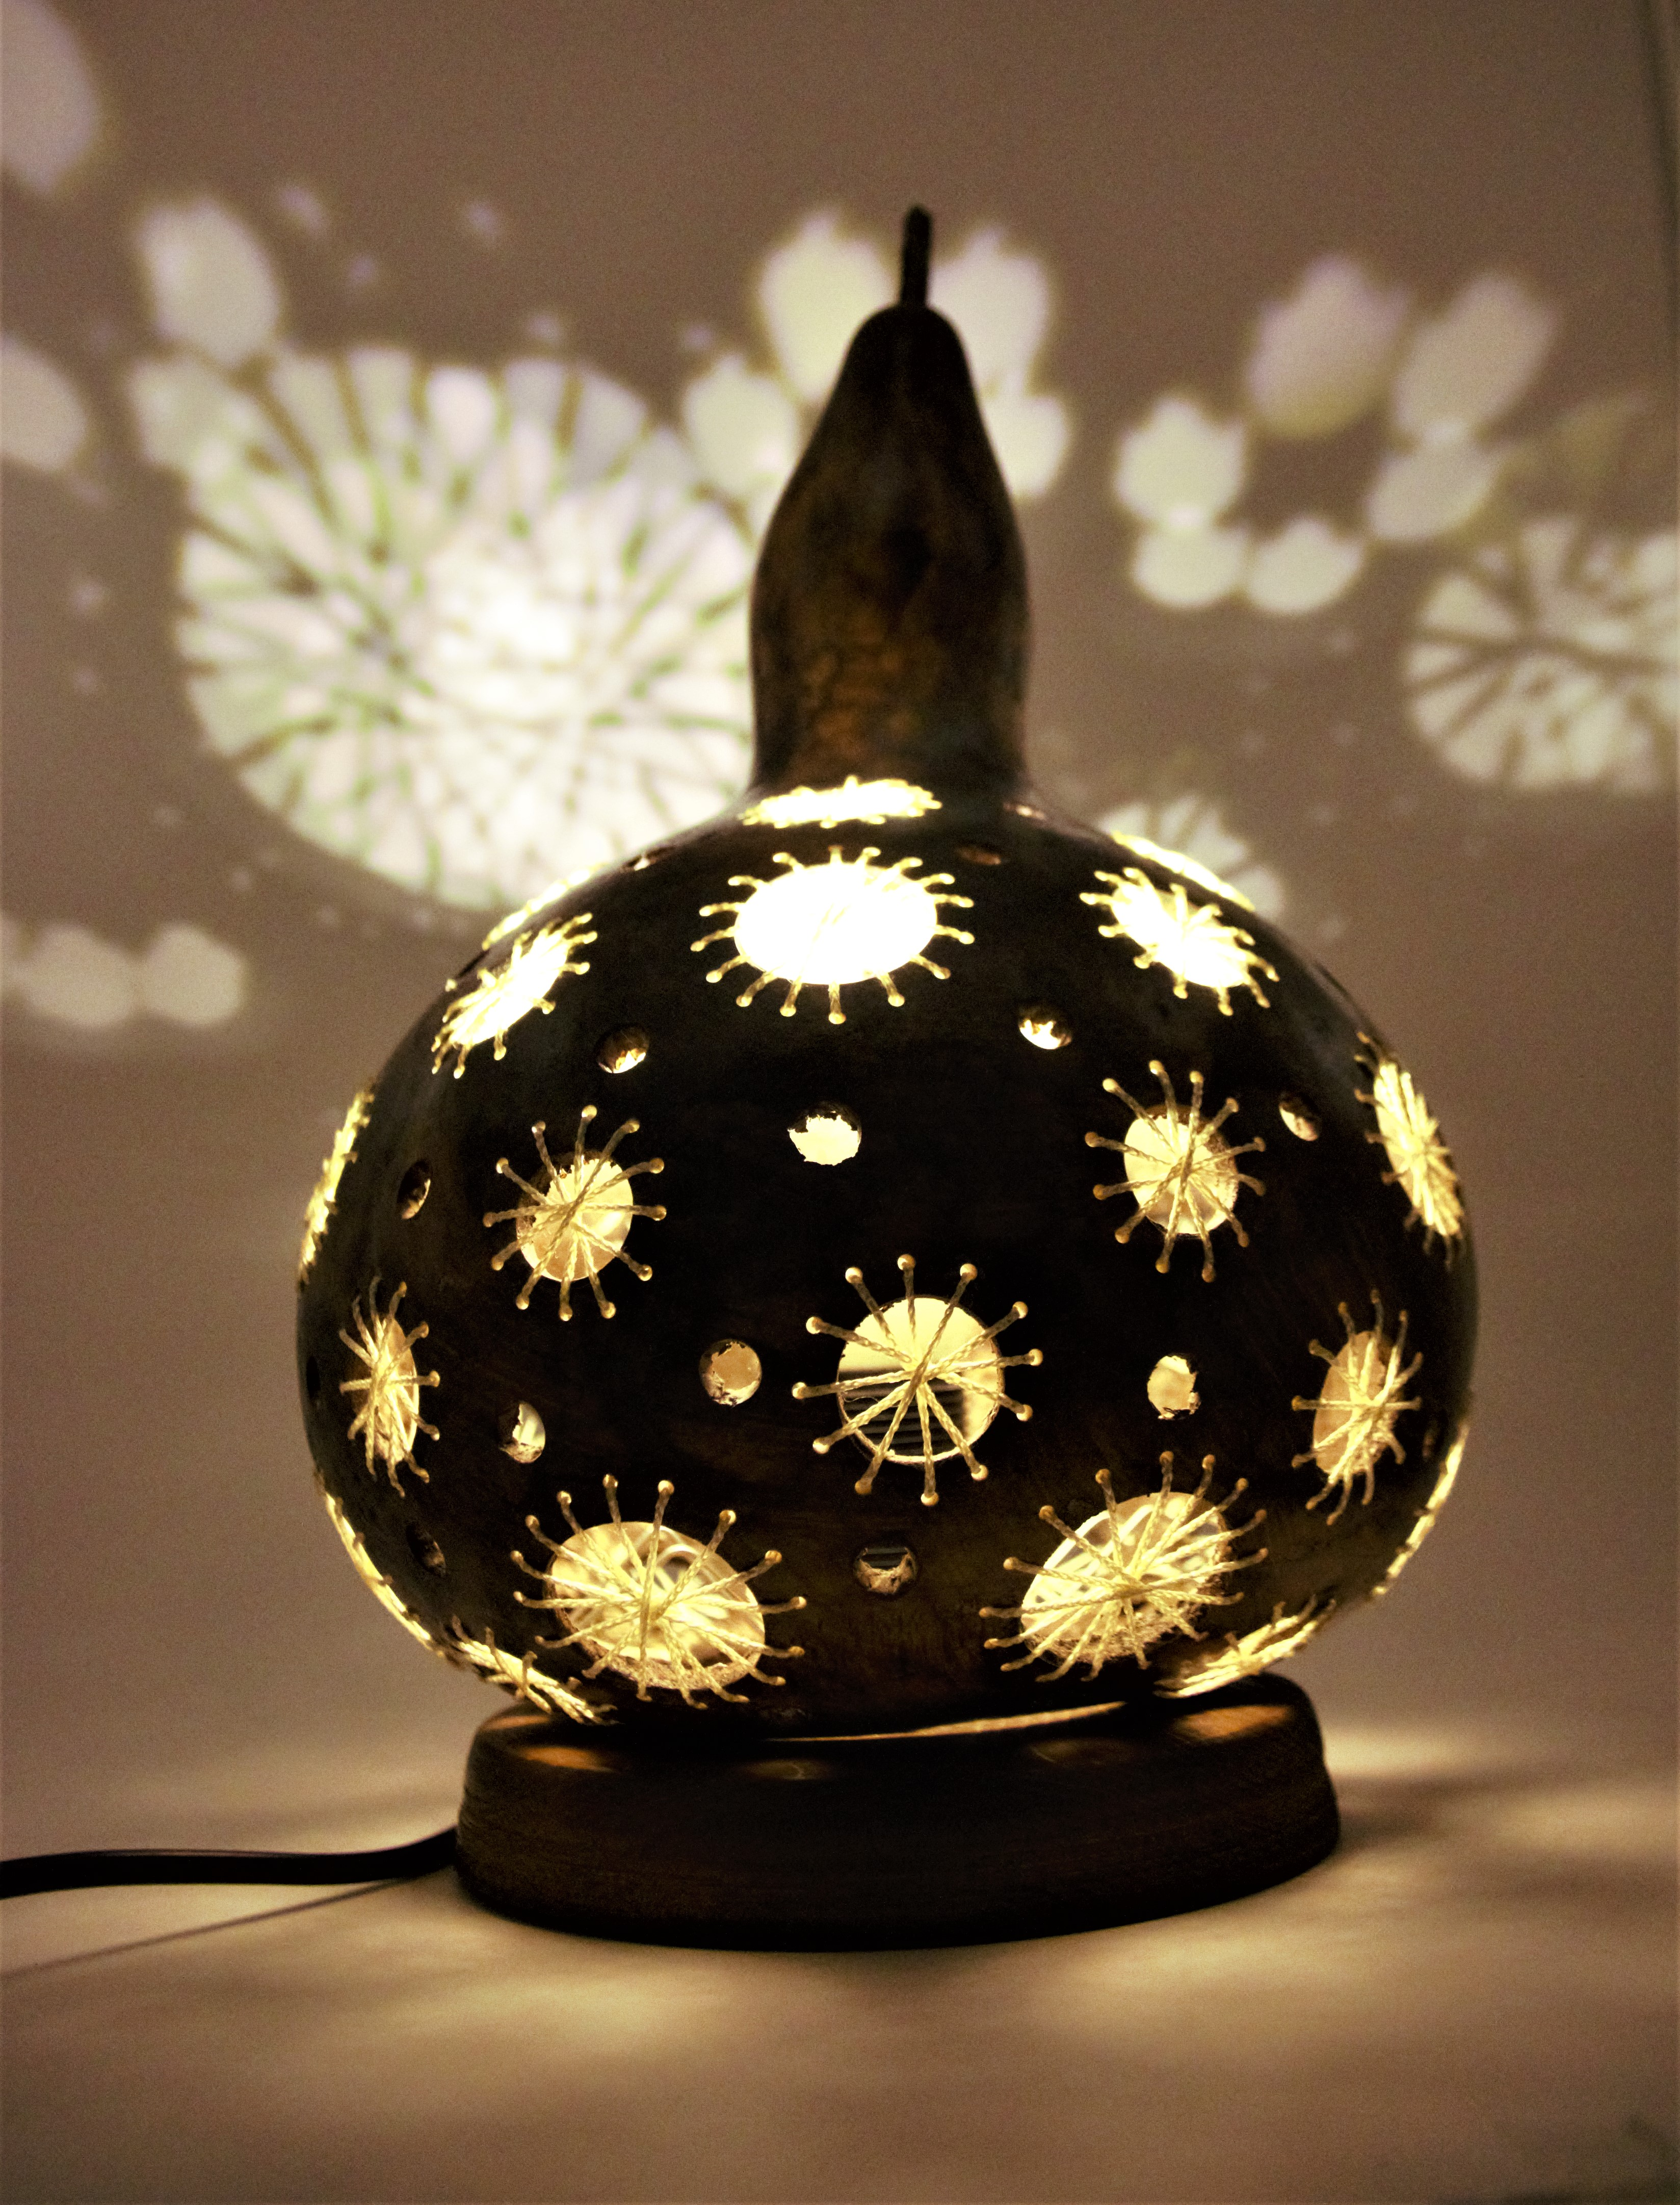 Knitting Lampshad Night Lamp High Quality Material Gourd Table Handmade Cover Desk Lights For Bedroom Study Homereading LED LAMP